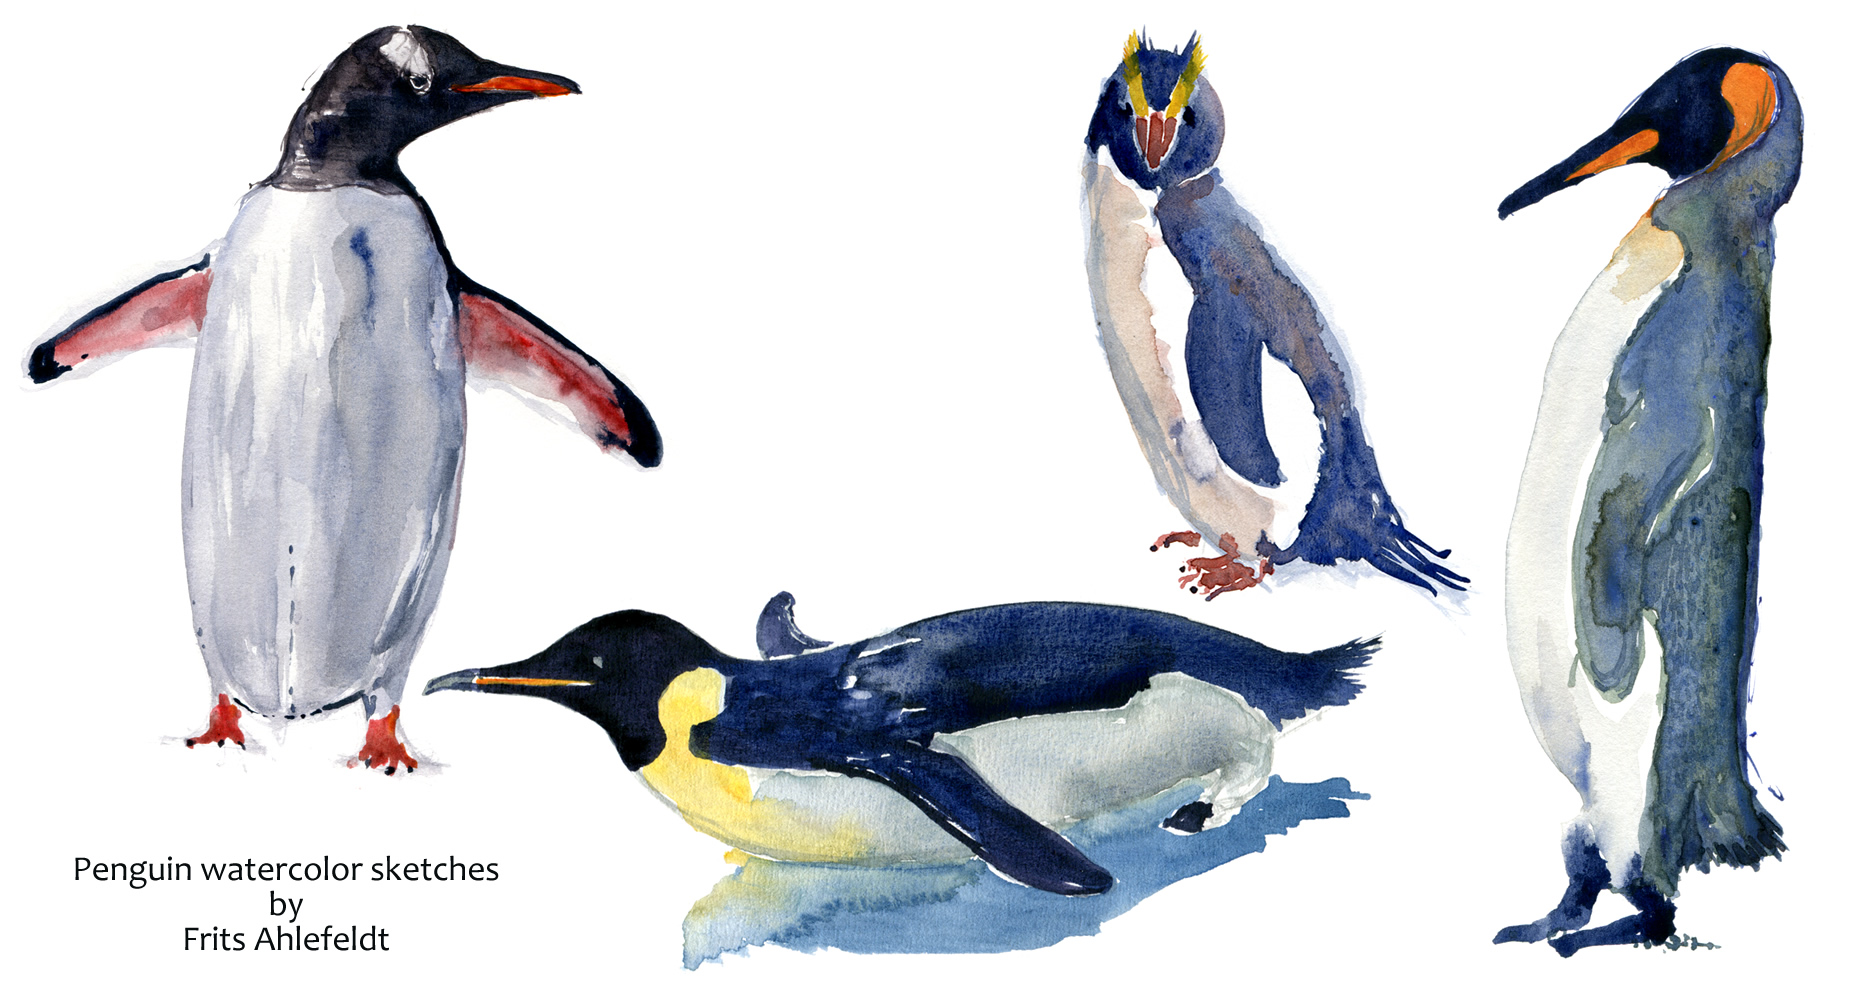 Watercolor sketches of penguins